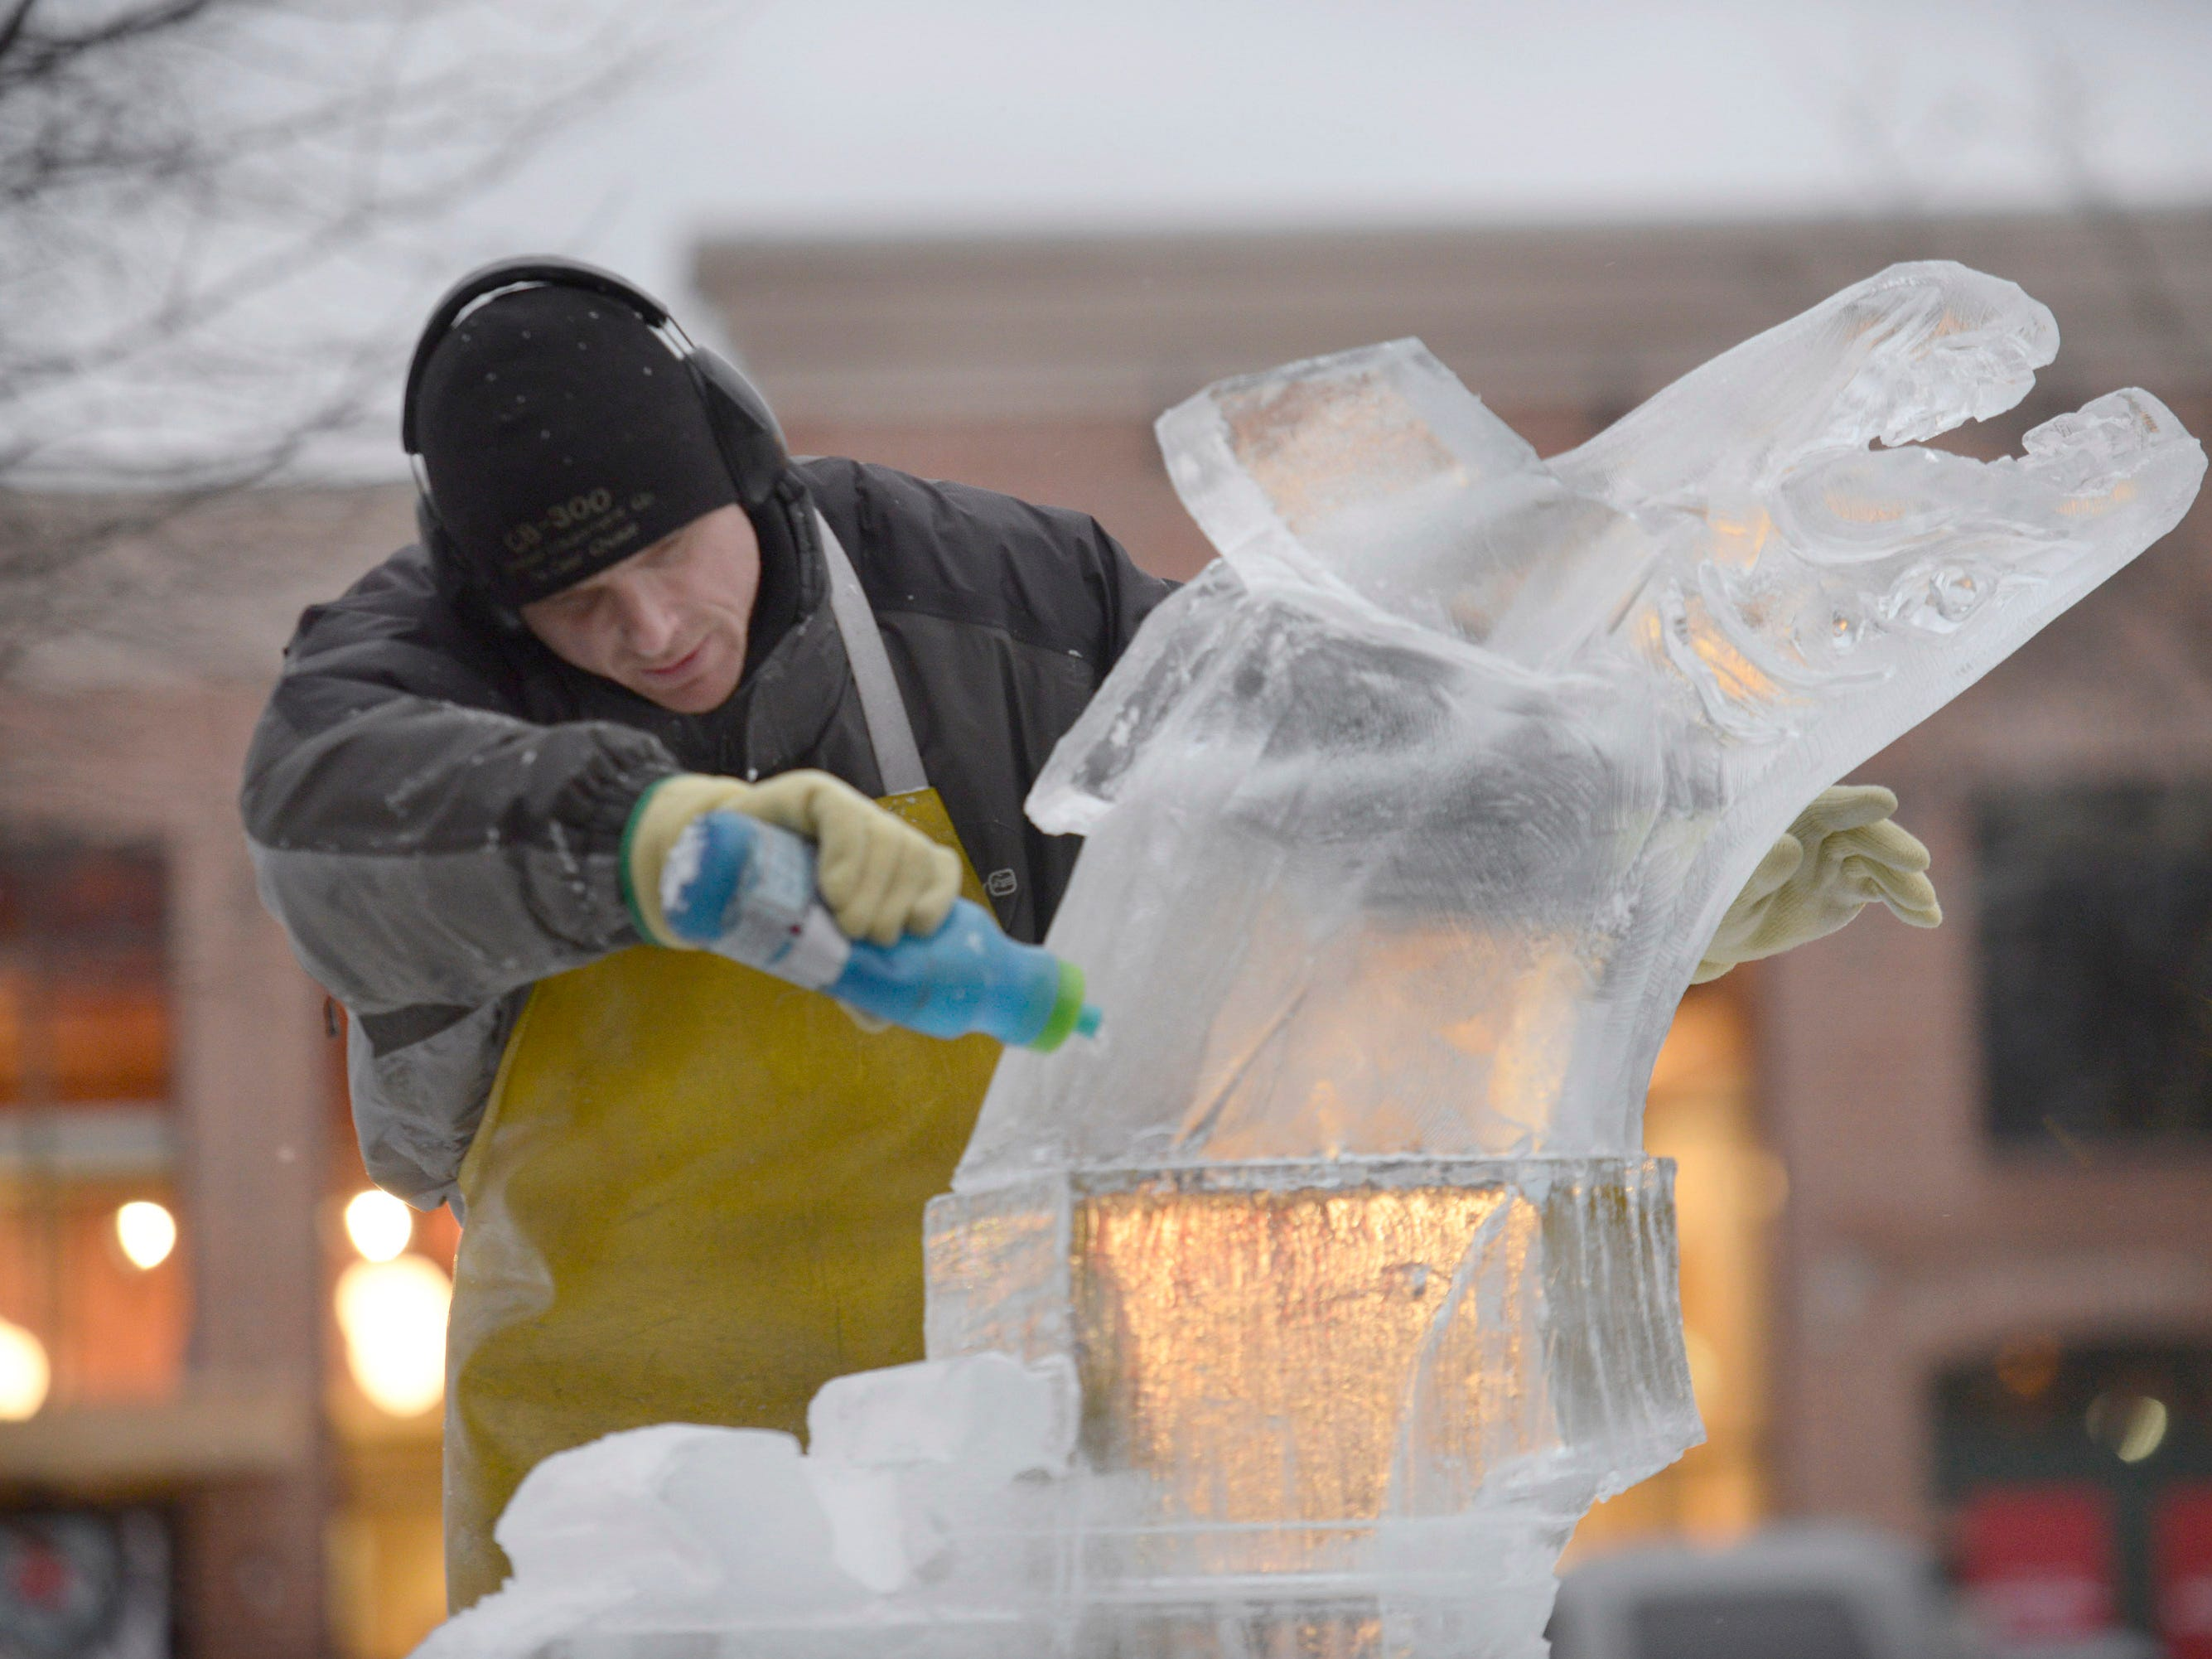 Clinton Rich from Clear Cut Ice uses water to seal an ice block carved into a salmon then moved to the top of other blocks of ice at the Plymouth Ice Festival that runs Jan. 11-13.